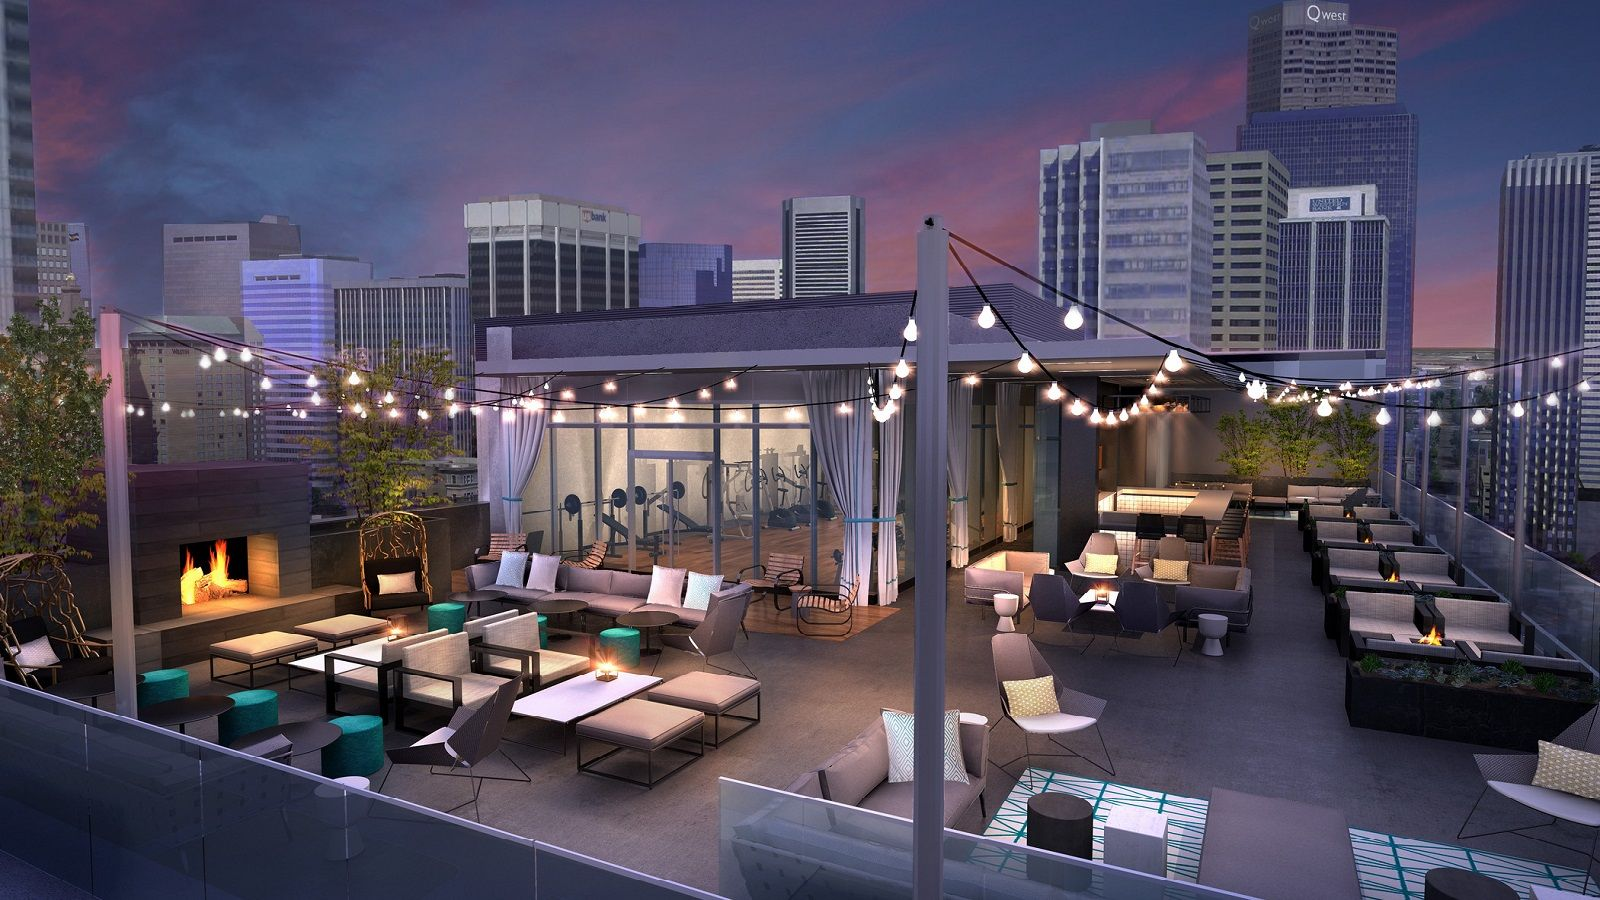 White Lodging's rooftop space at Le Méridien Denver Downtown, 54thirty, is temporarily closed for renovations.